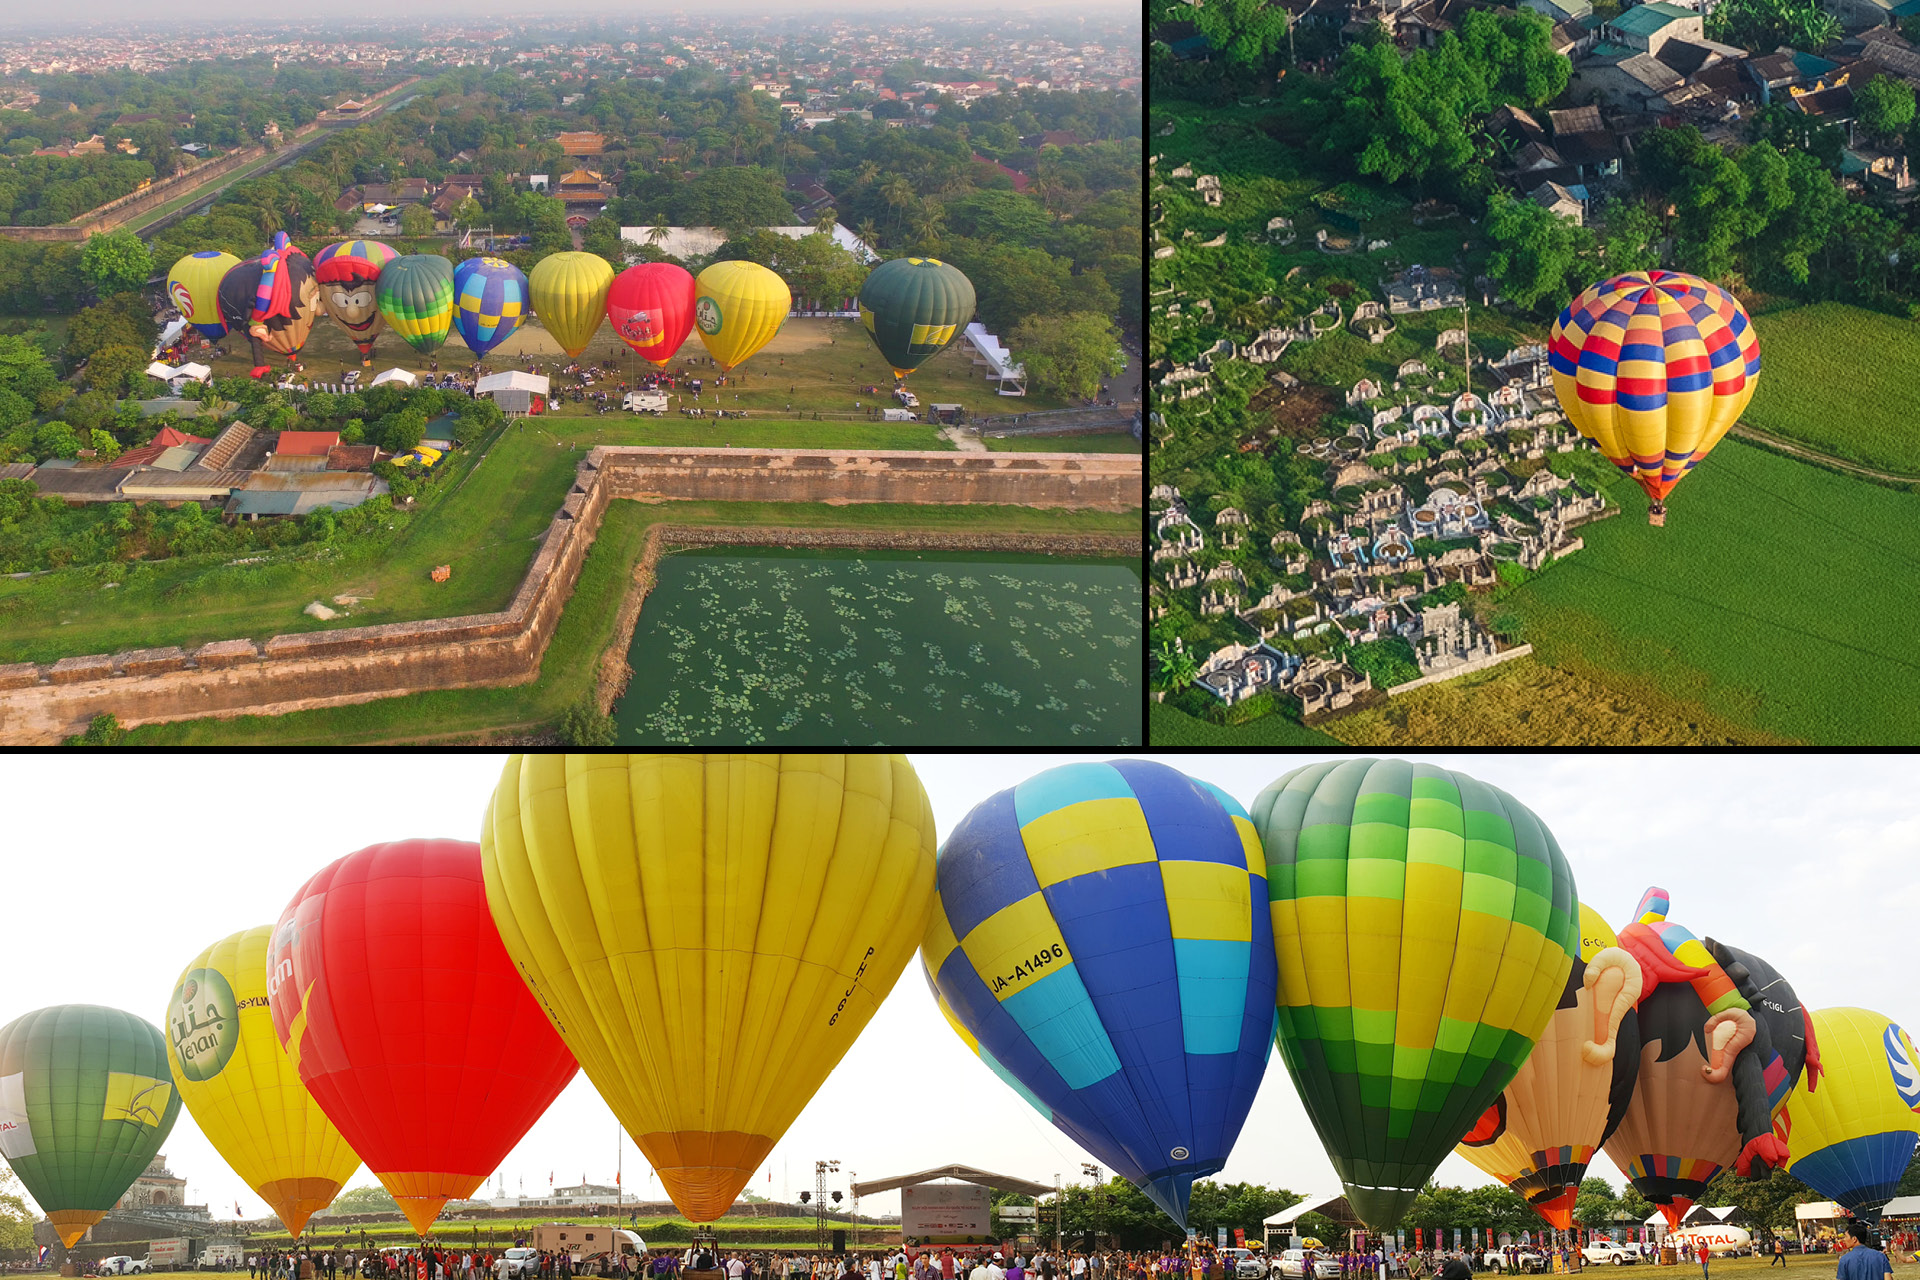 Flying along with the hot air balloon